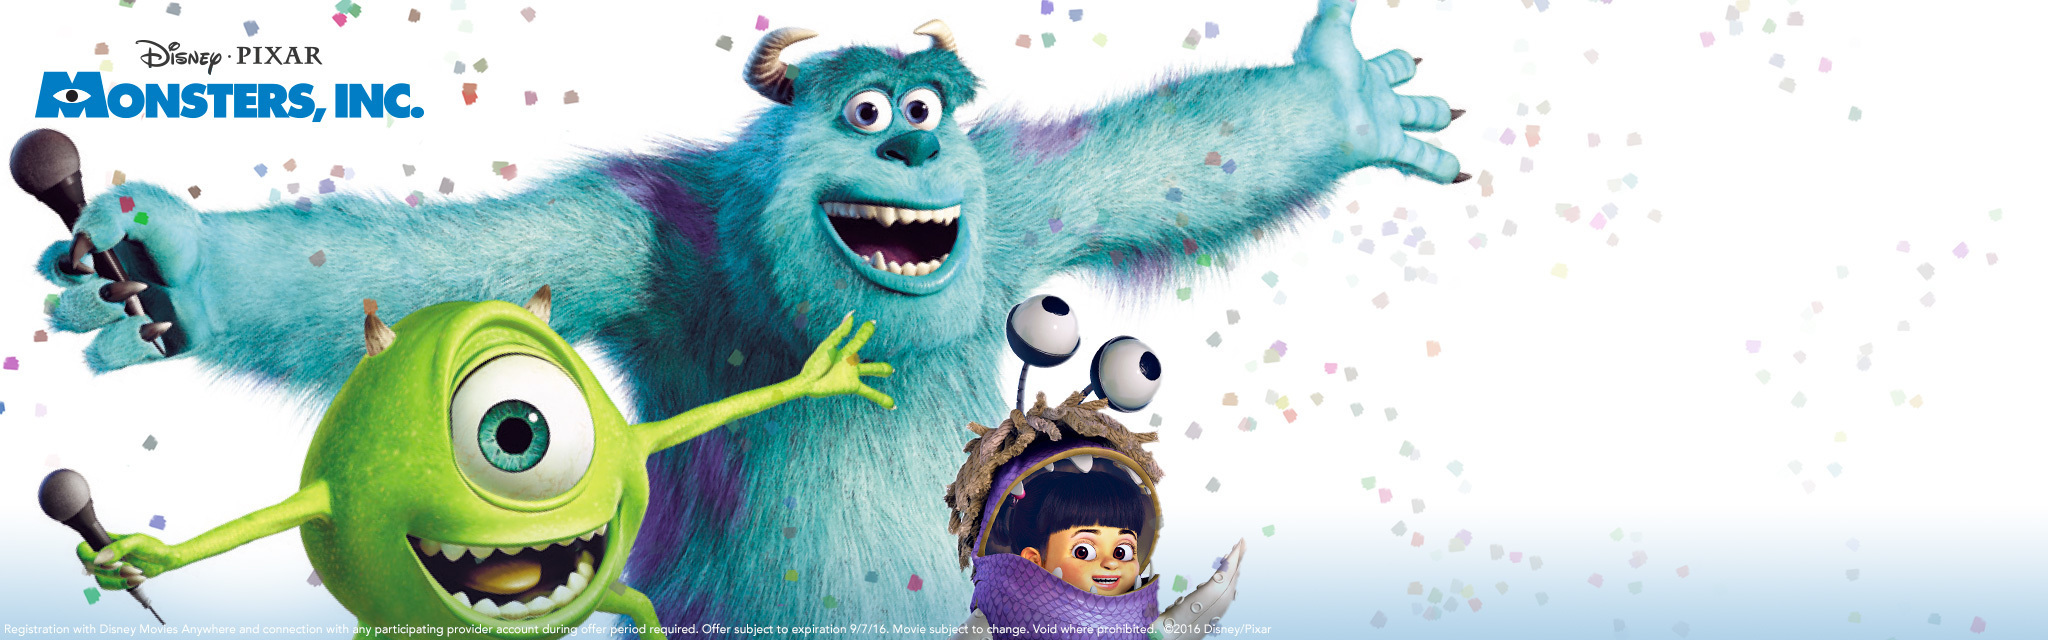 DMA - Monsters, Inc Offer - Hero